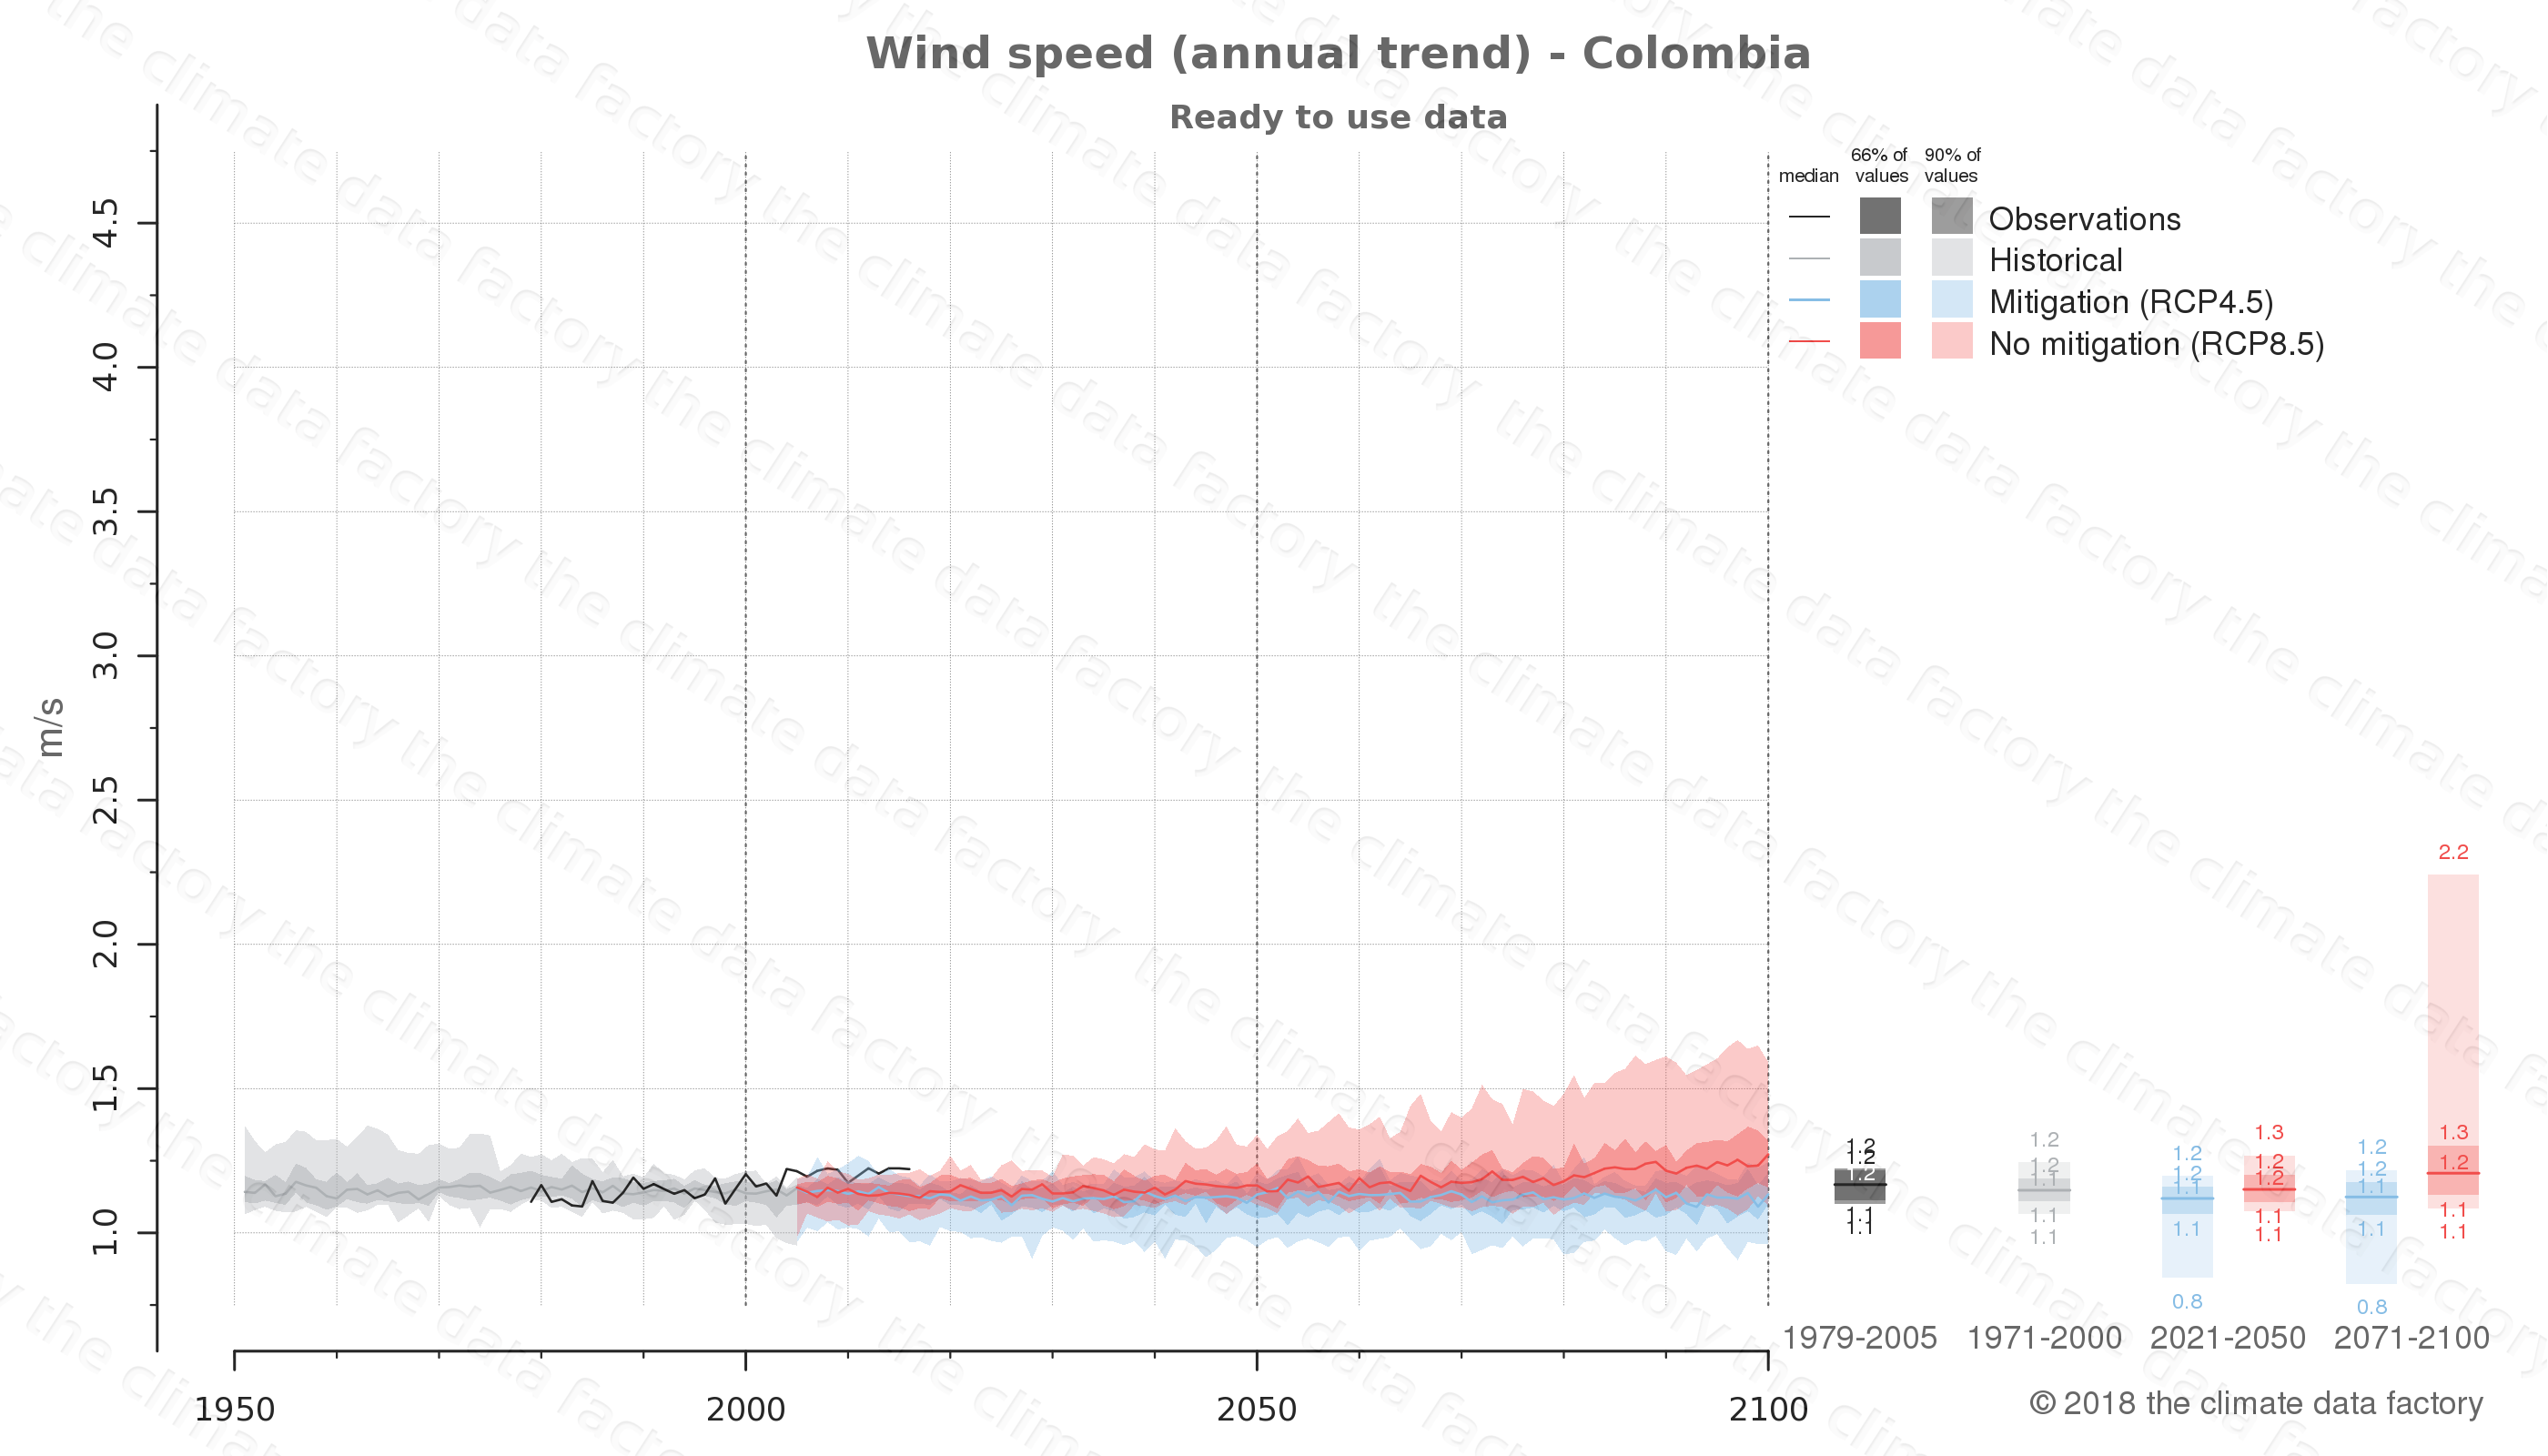 climate change data policy adaptation climate graph country data wind speed colombia south-america